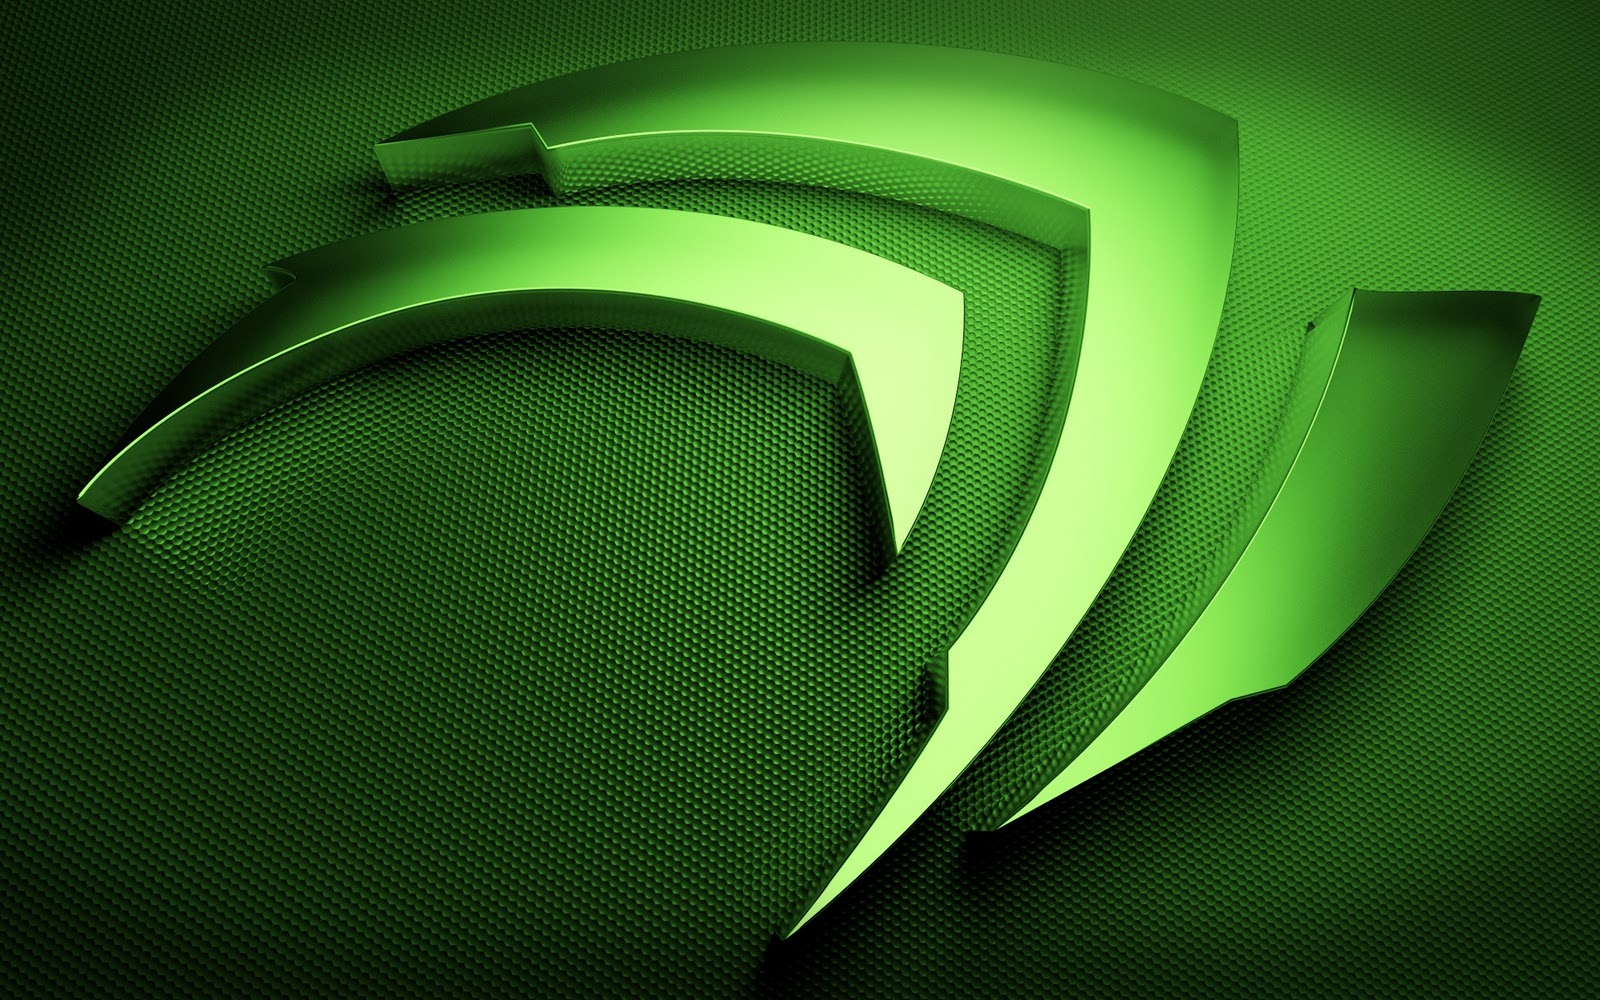 Hd 3d Wallpapers For Computer 100 Top Hd Wallpapers 2012 Free Vector